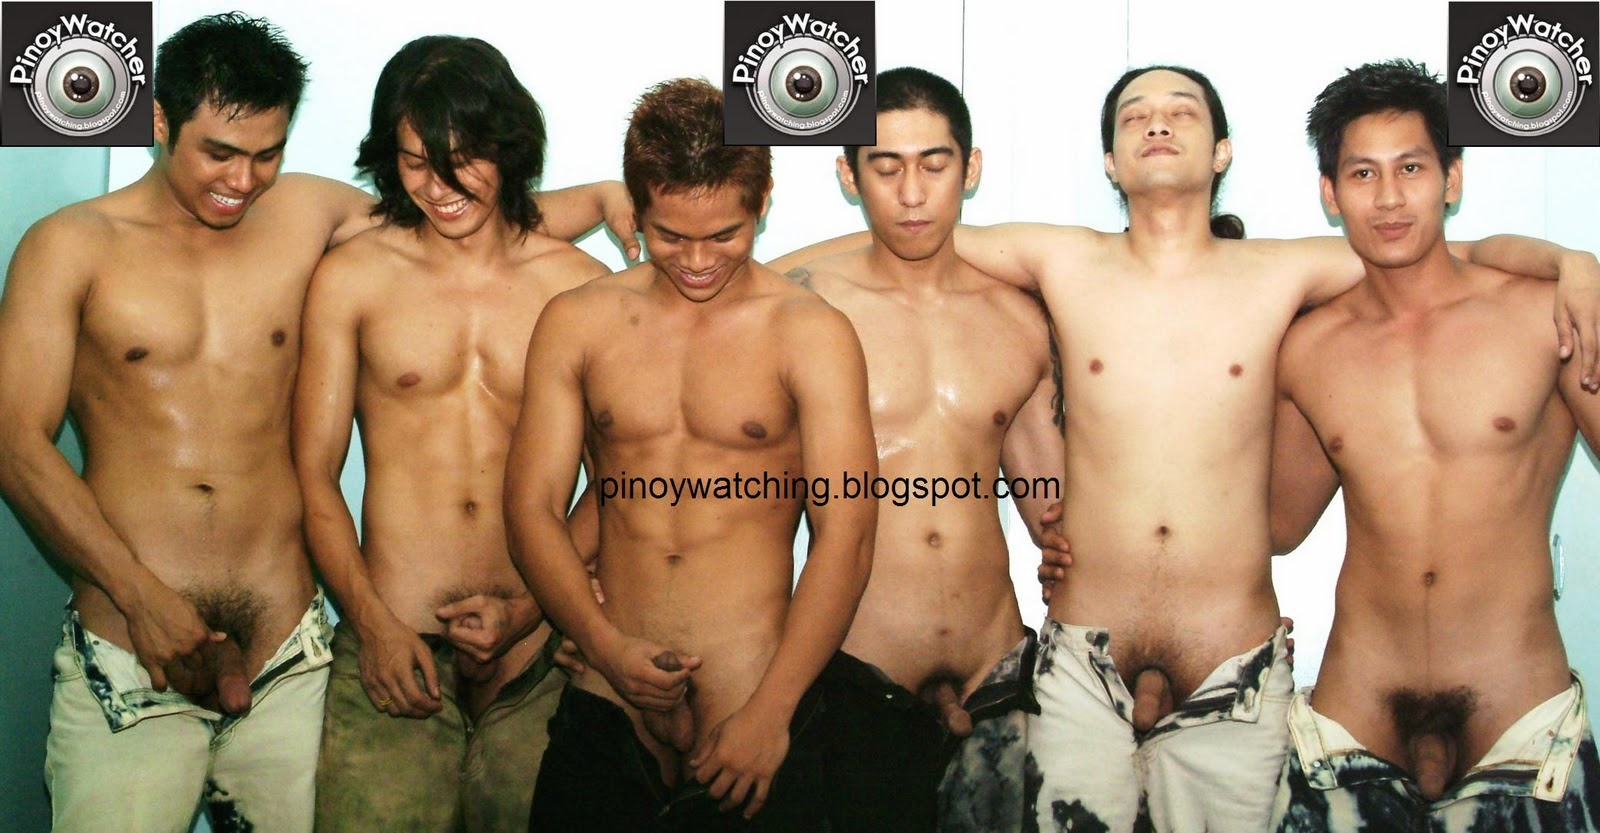 Pinoy Male Dancers Nude - Photo Erotics-7997